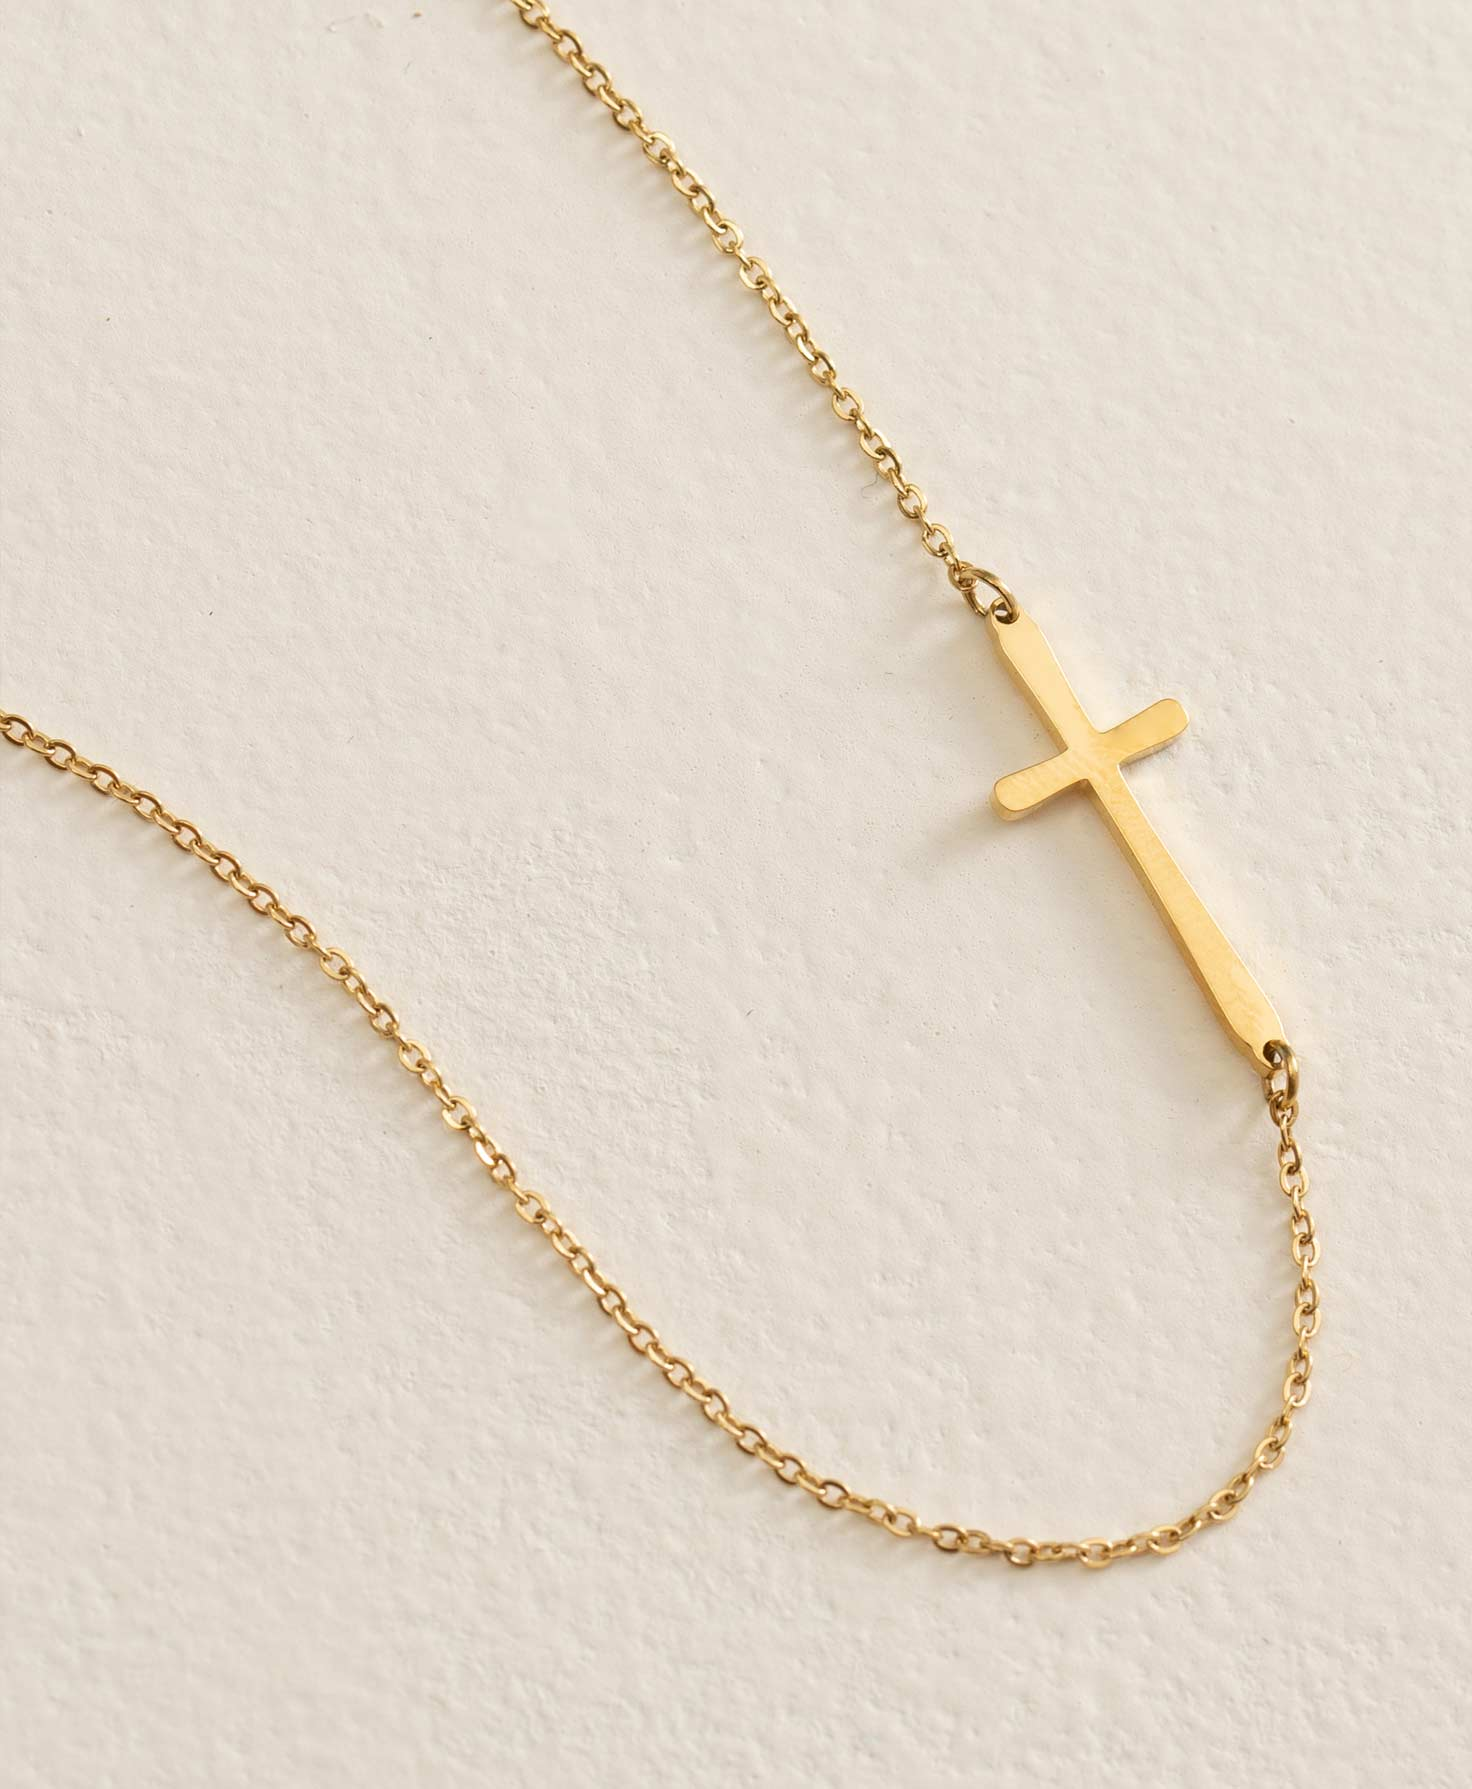 The Belief Necklace in Gold lays flat on a cream-colored surface. It features a gold plated stainless steel chain. A dainty gold cross is joined to the chain via jump rings at the top and bottom of the cross. The cross can be positioned horizontally at the bottom of the necklace or positioned vertically by rotating the necklace. This short necklace can be adjusted via the extender chain at the back.